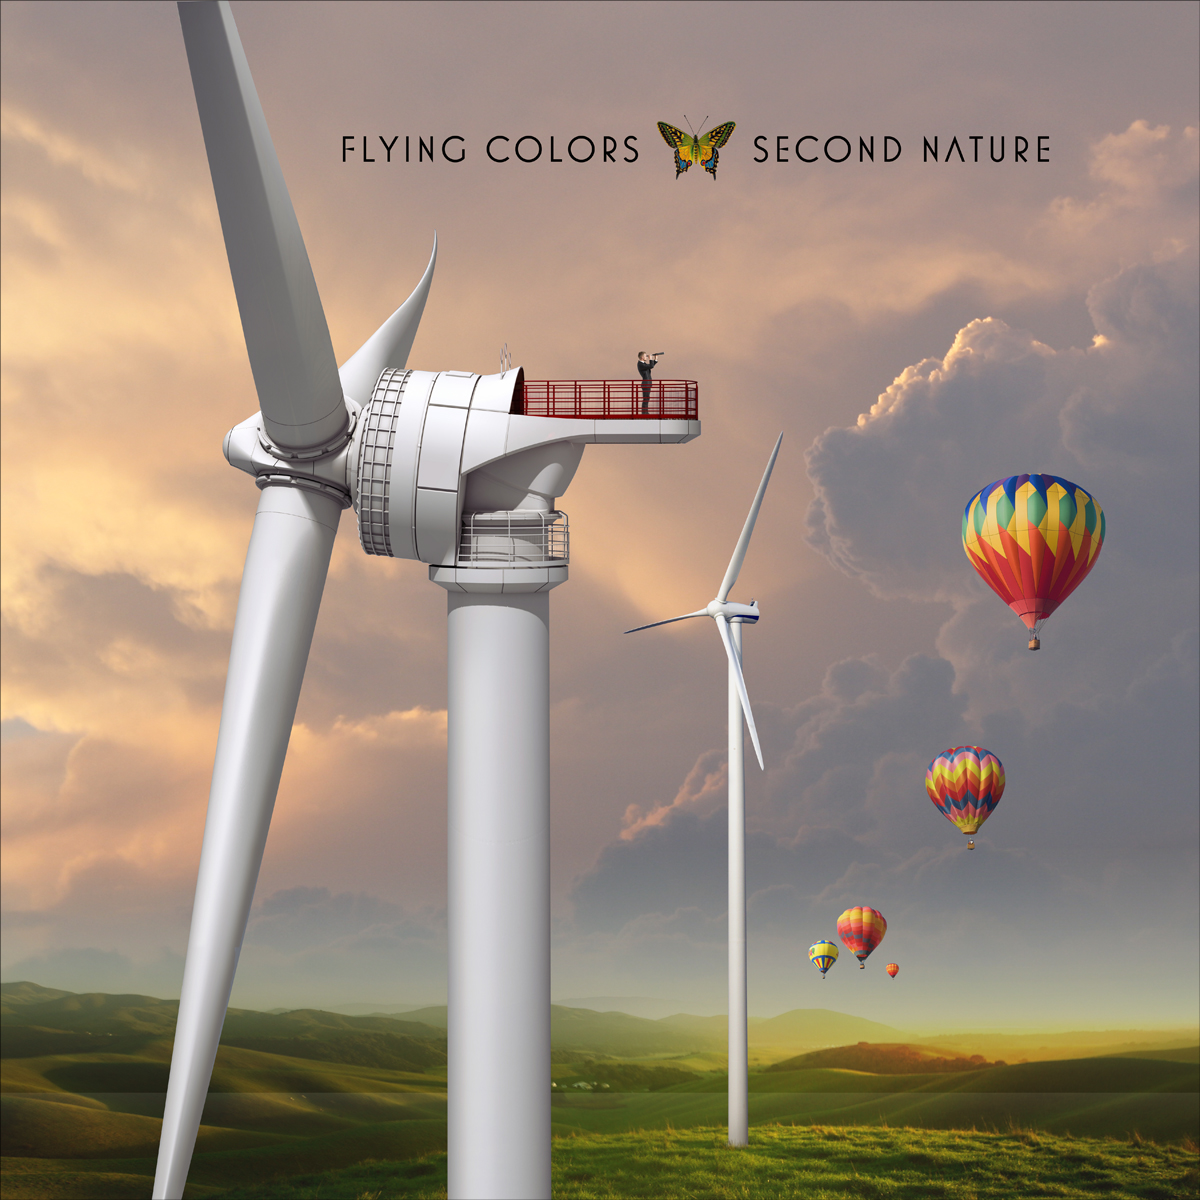 CD Pre Review: Second Nature by Flying Colors